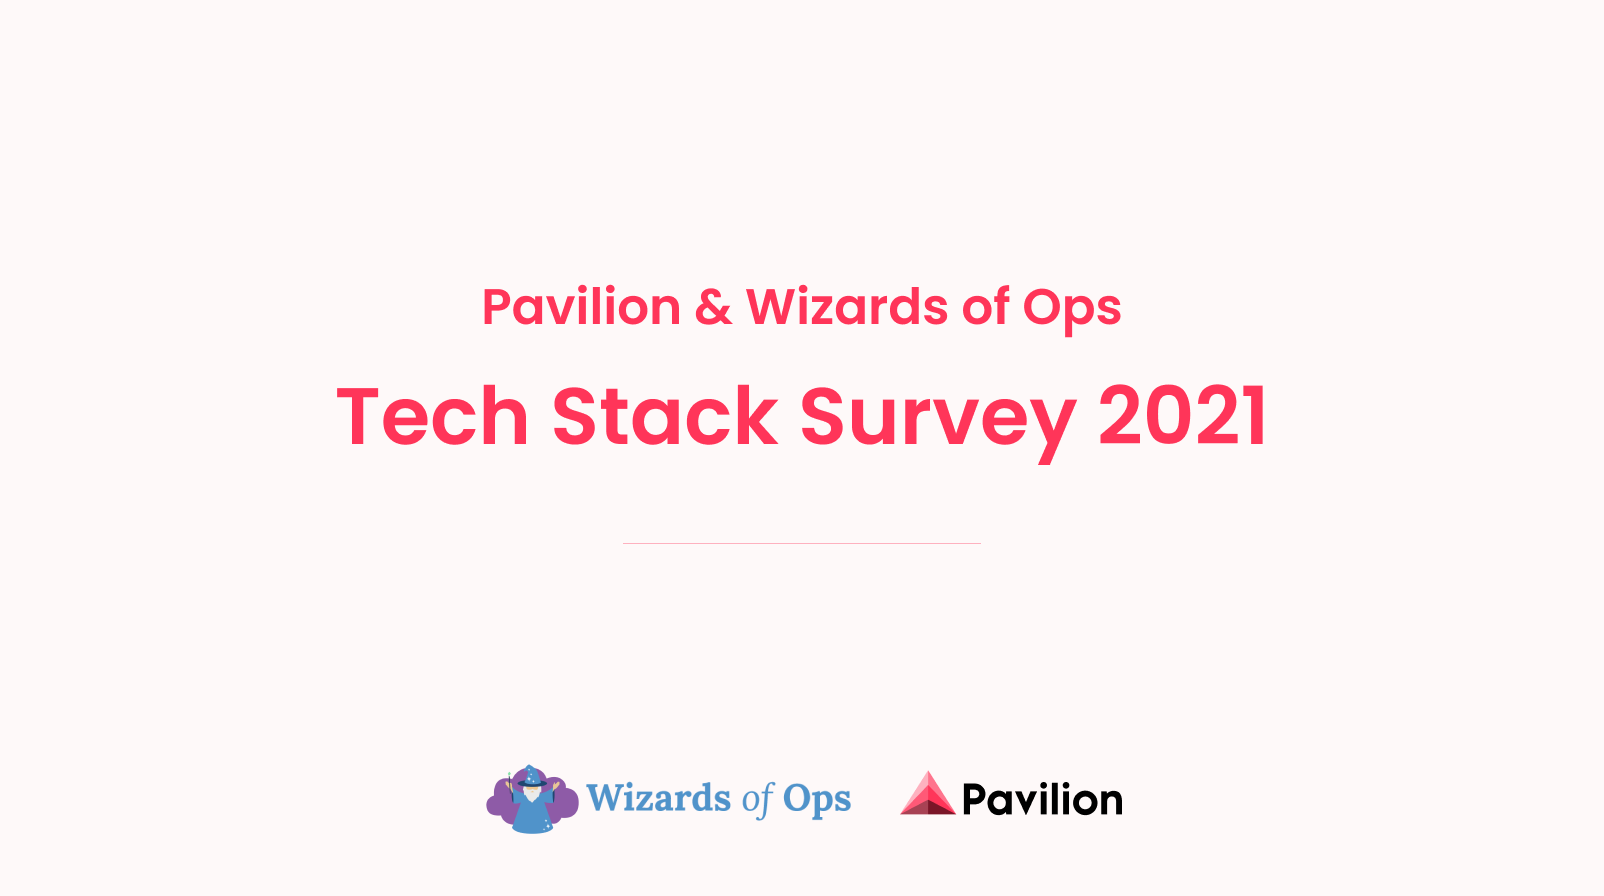 Pavilion, Wizards of Ops Tech Stack Survey